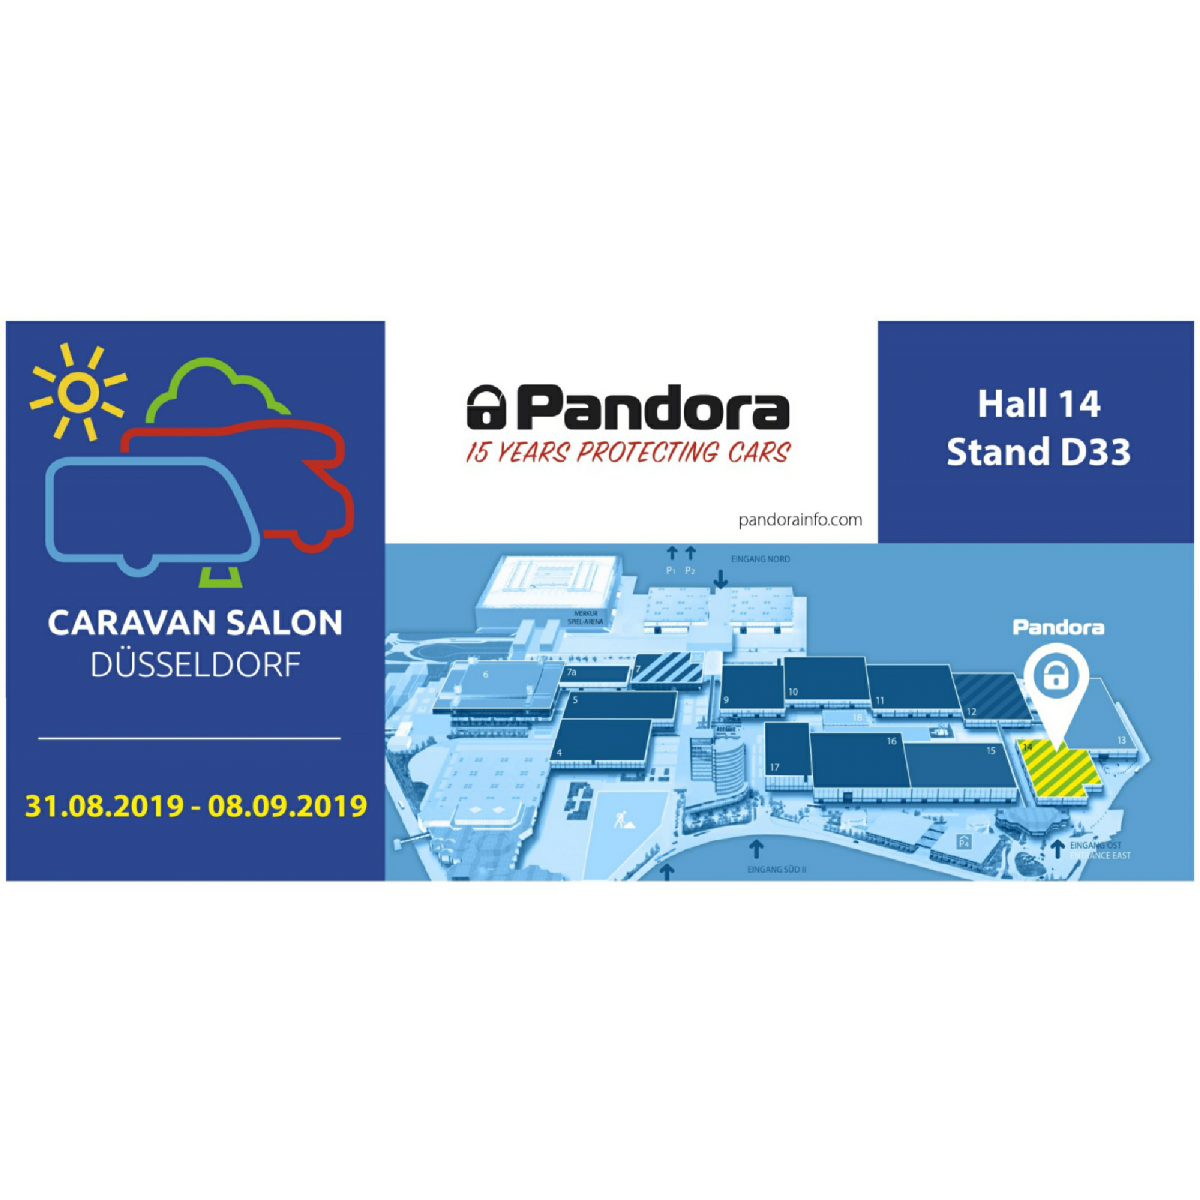 Pandora at Caravan Salon Düsseldorf 2019